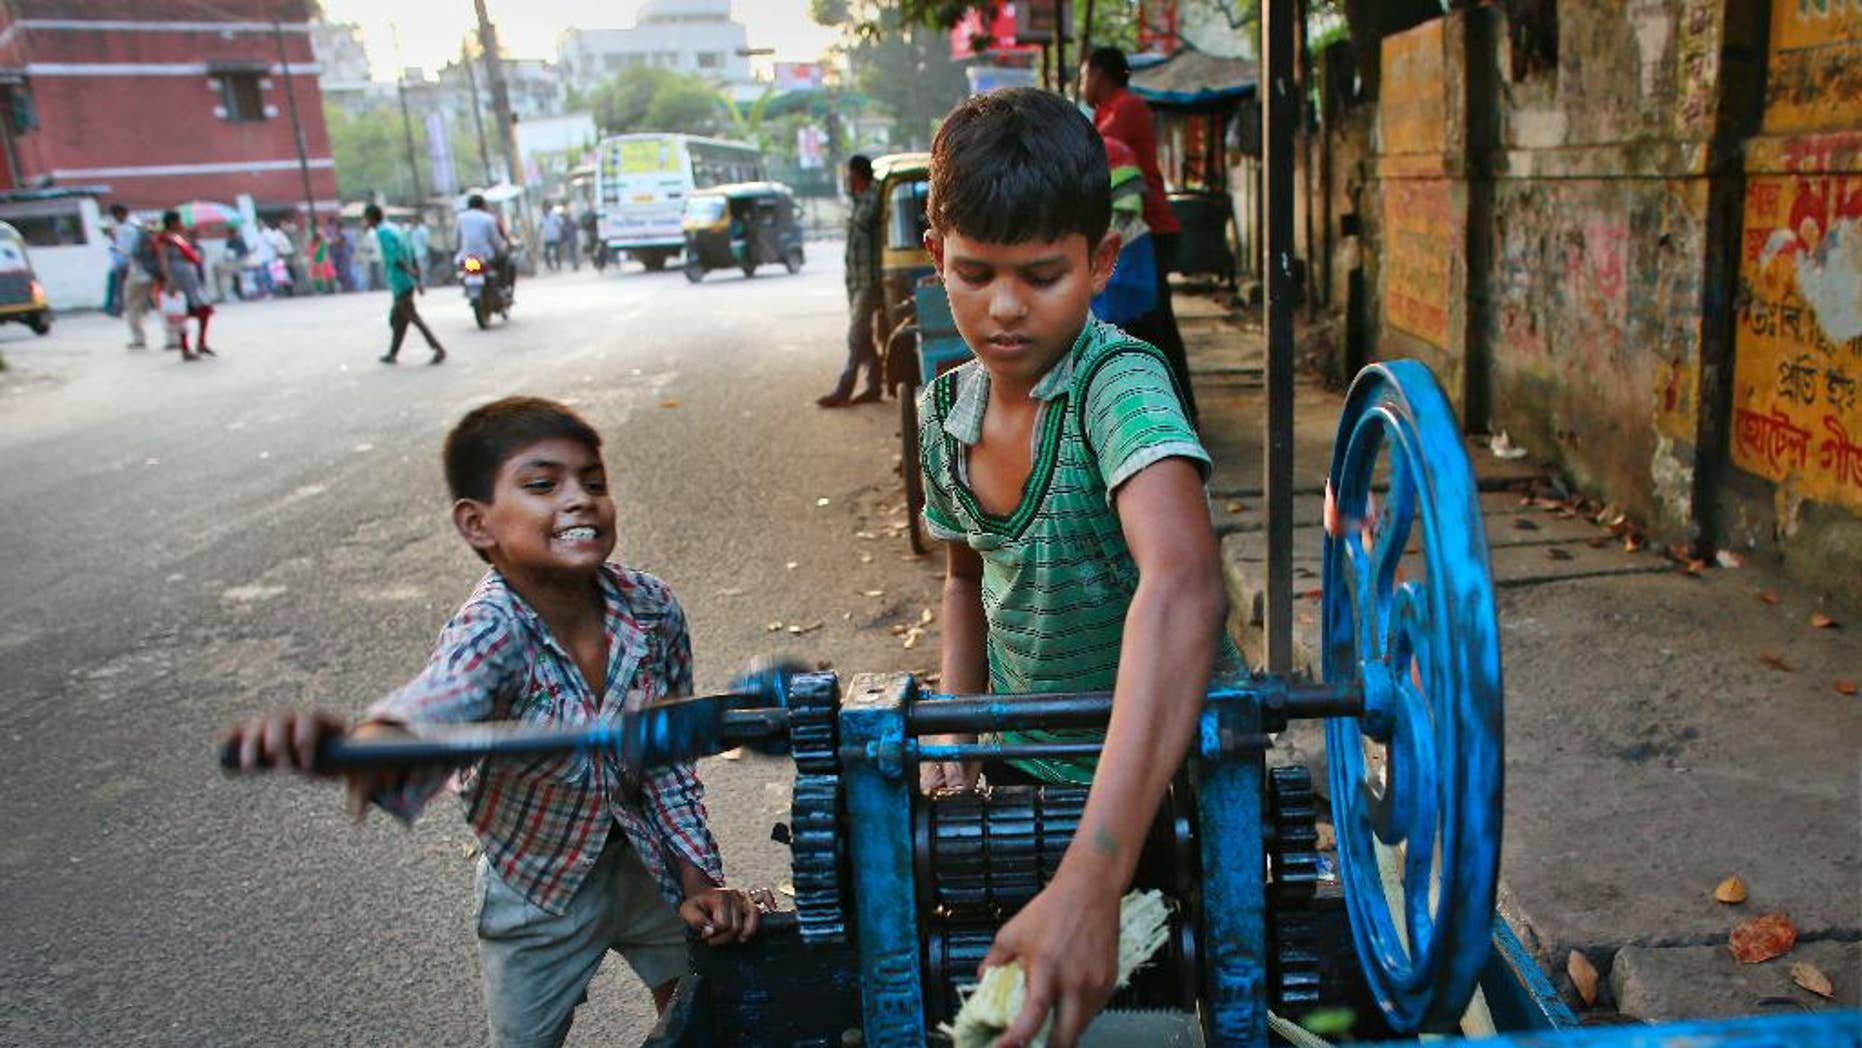 Ravi, 8, left, and Guddu, 12, extract sugarcane juice, in Gauhati, India, Friday, Oct. 10, 2014. Malala Yousafzai of Pakistan and Kailash Satyarthi of India won the Nobel Peace Prize on Friday, Oct. 10, 2014, for risking their lives to fight for children's rights. (AP Photo/Anupam Nath)